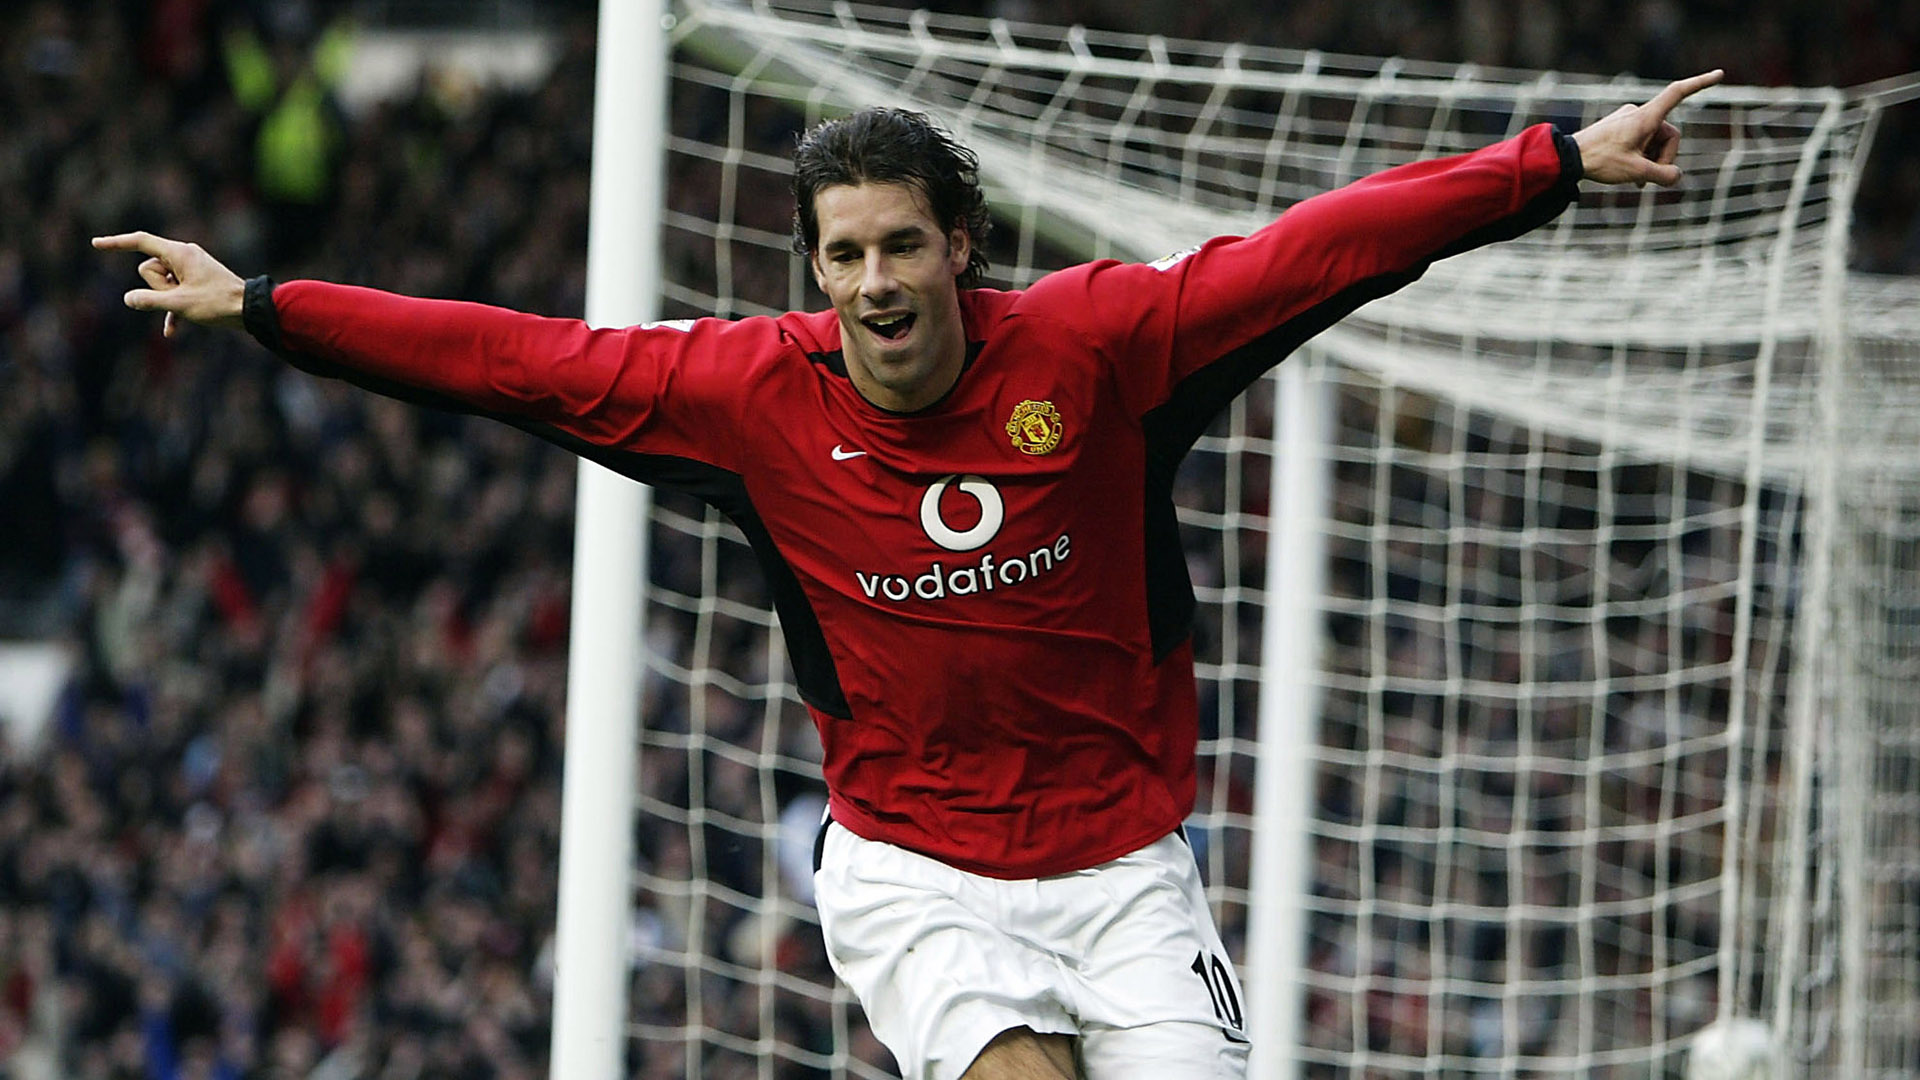 Ruud van Nistelrooy Manchester United Premier League